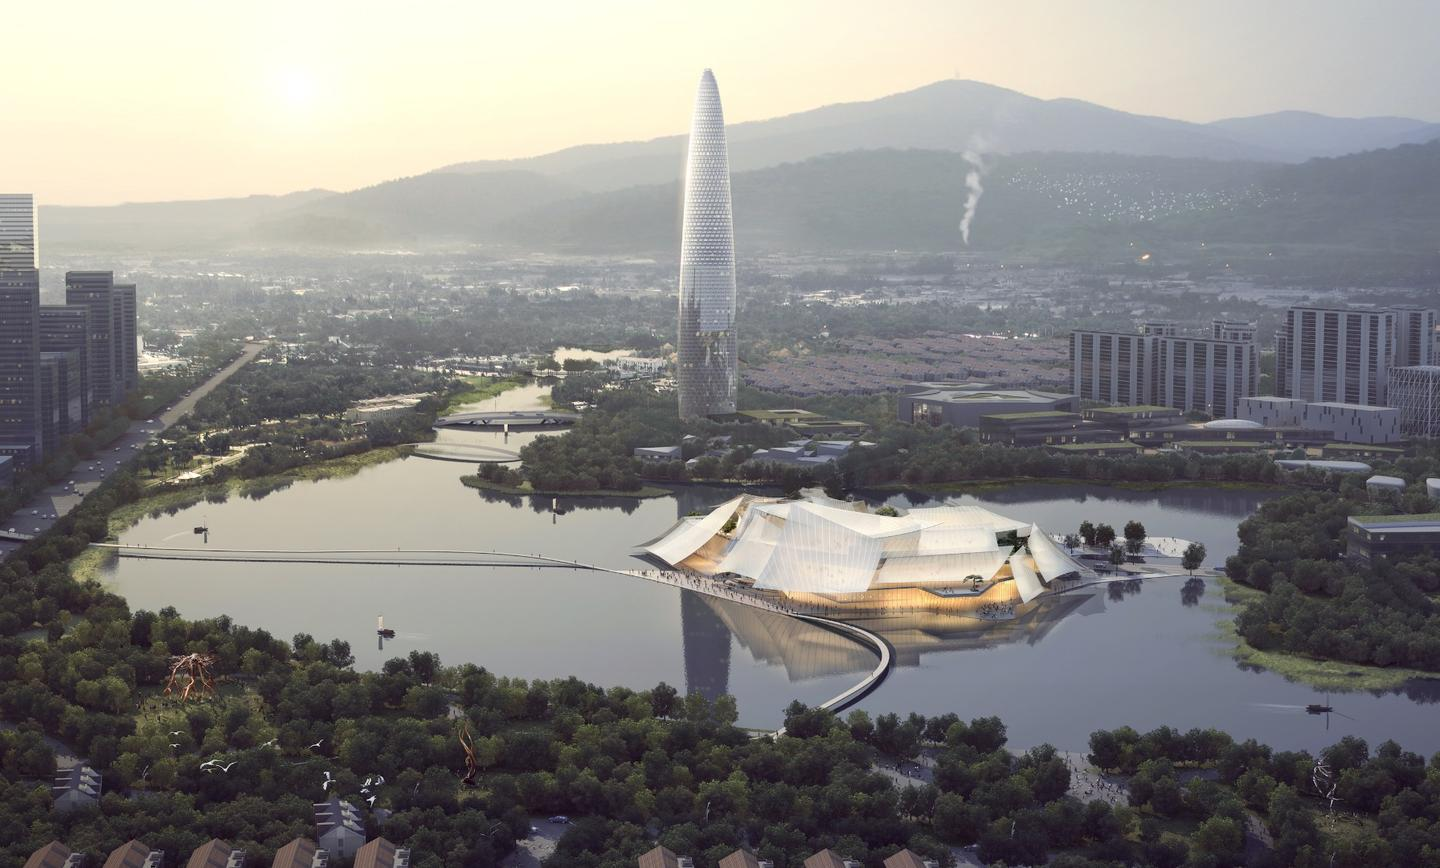 The Yiwu Grand Theater will measure 95,290 sq m (roughly 1 million sq ft)